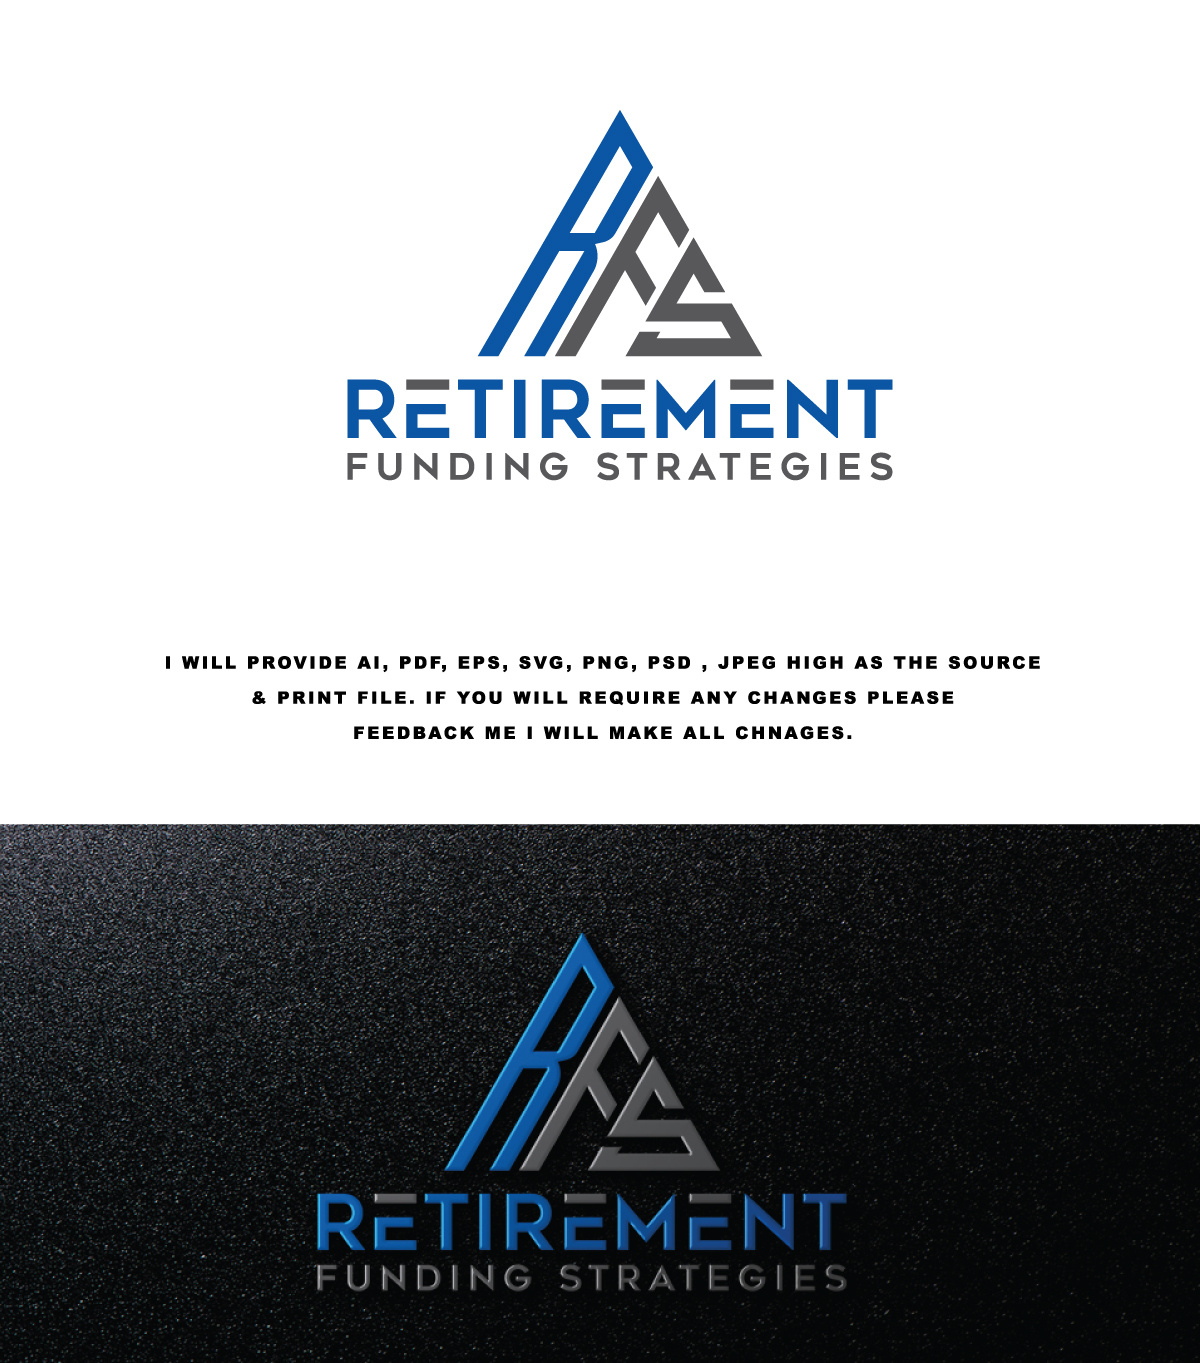 Logo Design For Retirement Funding Strategies By Mr Destiny